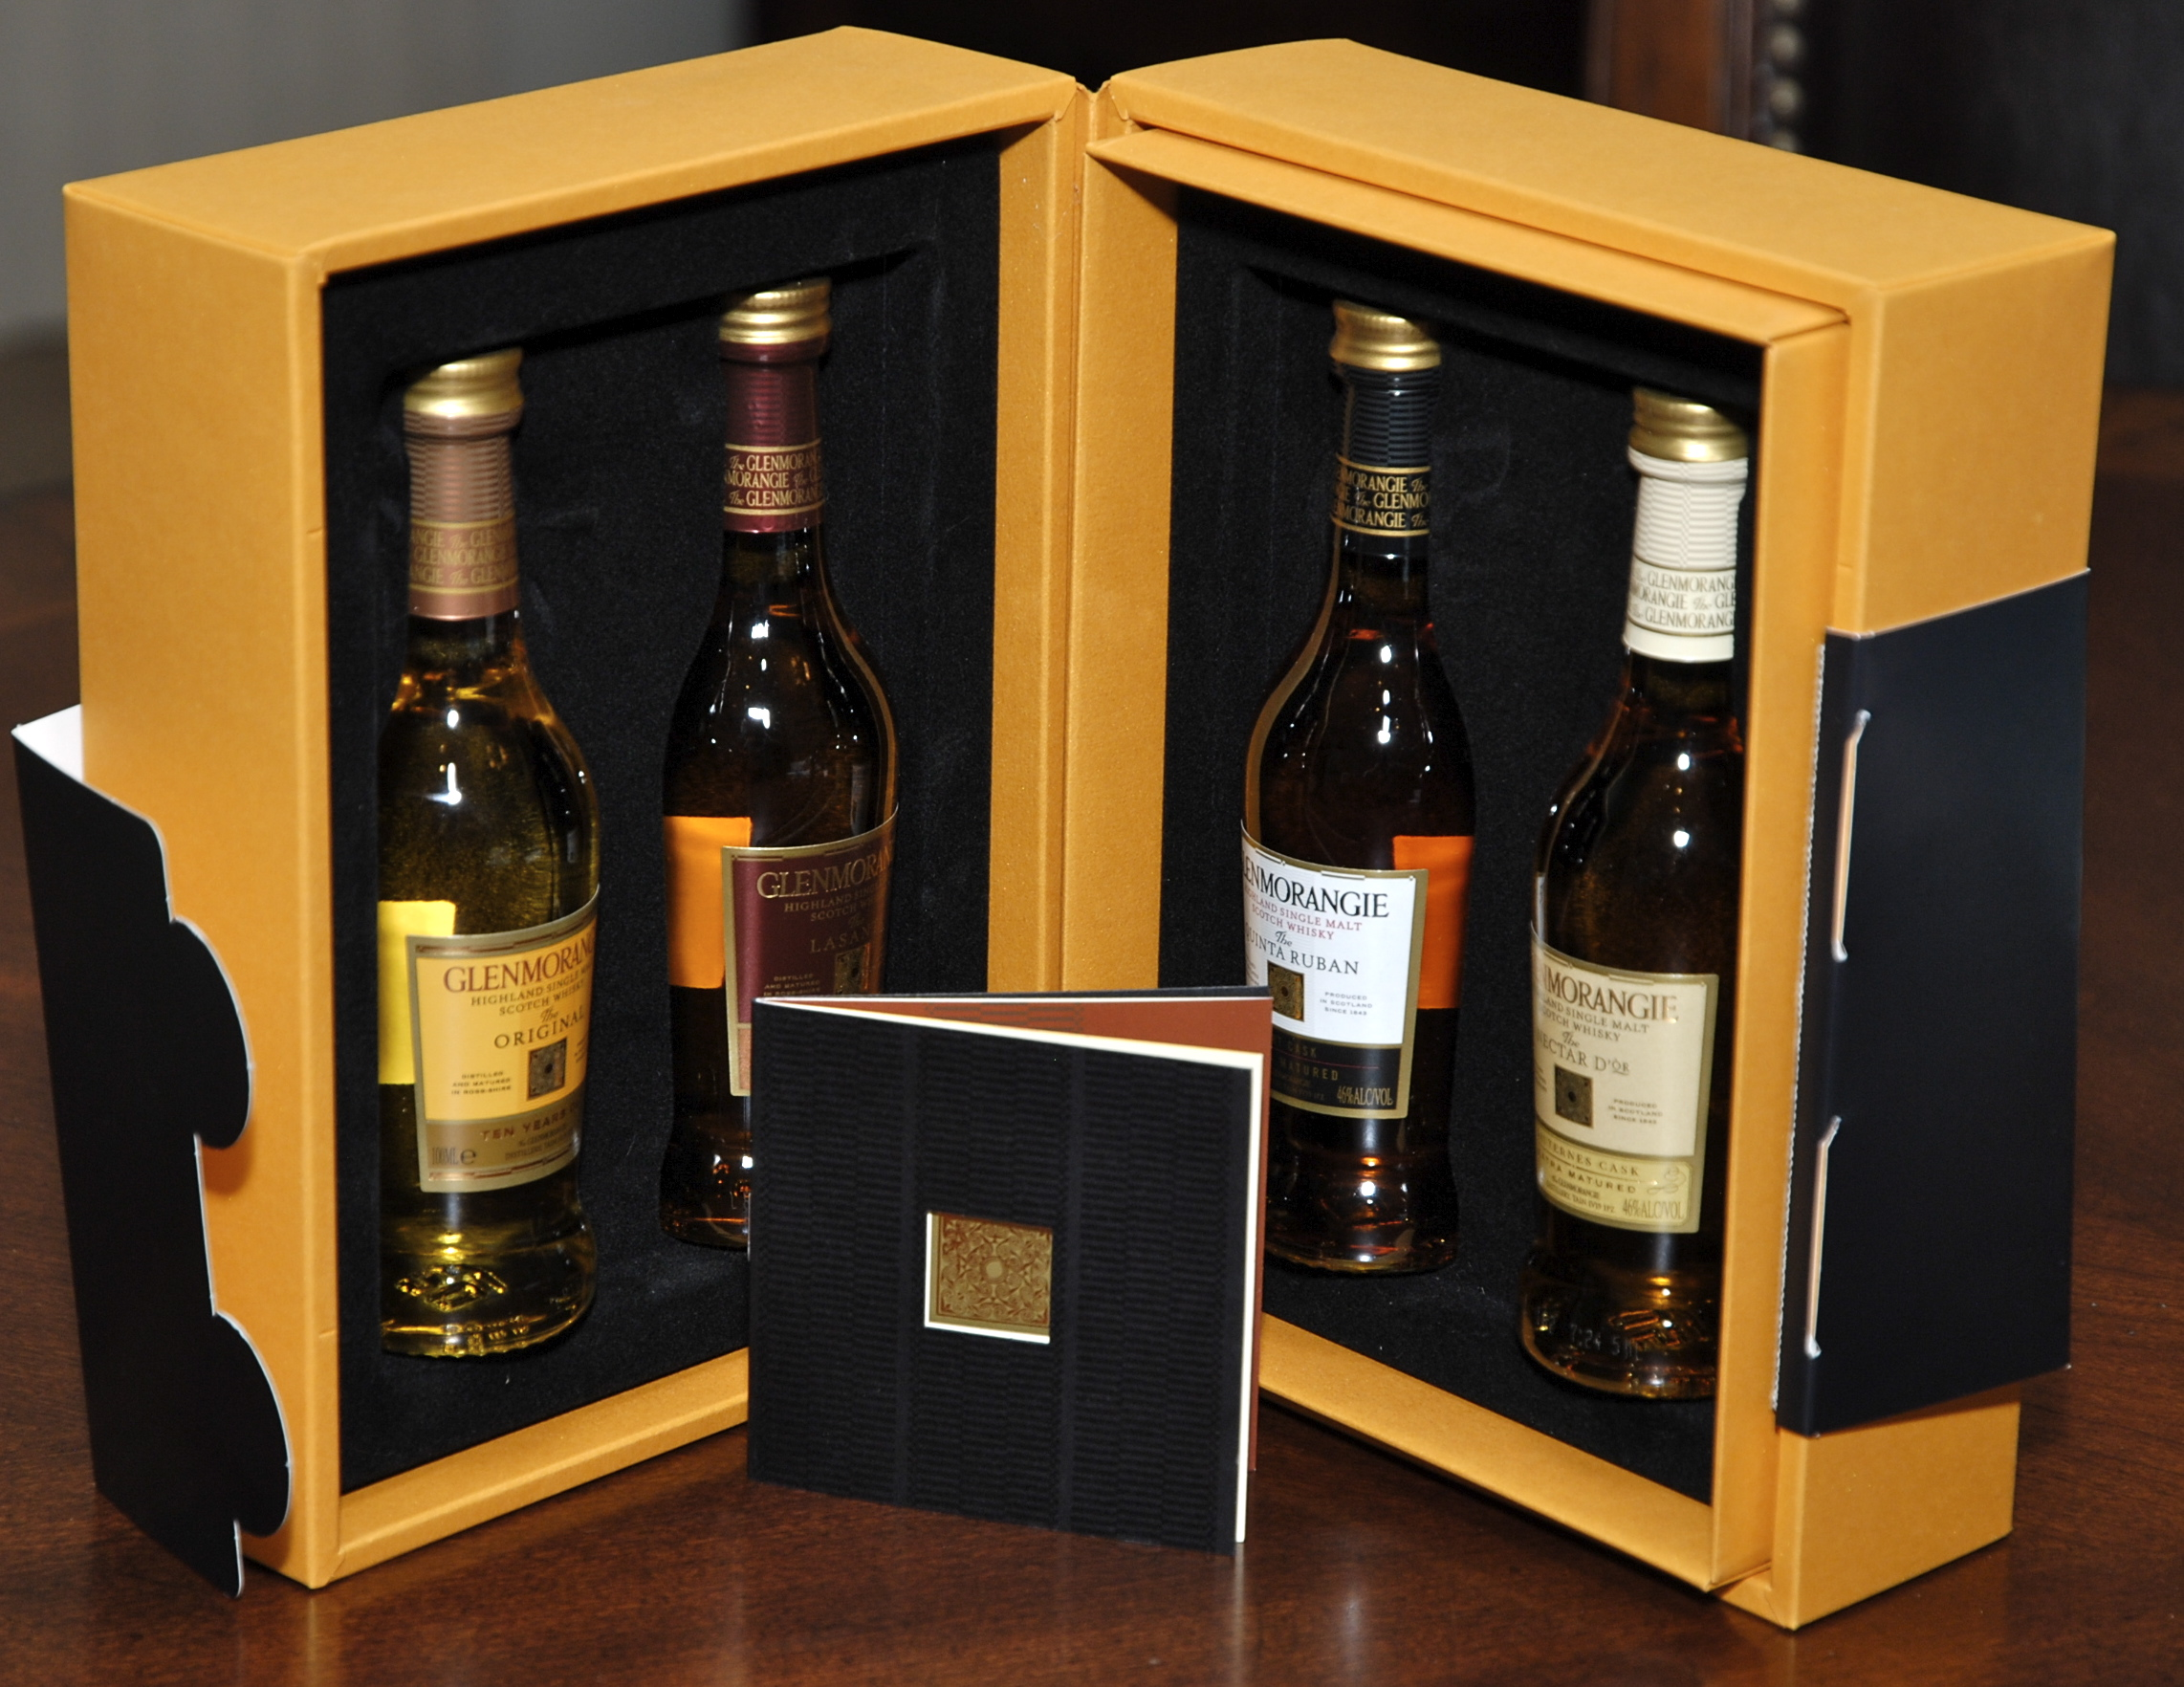 The Glenmorangie Collection